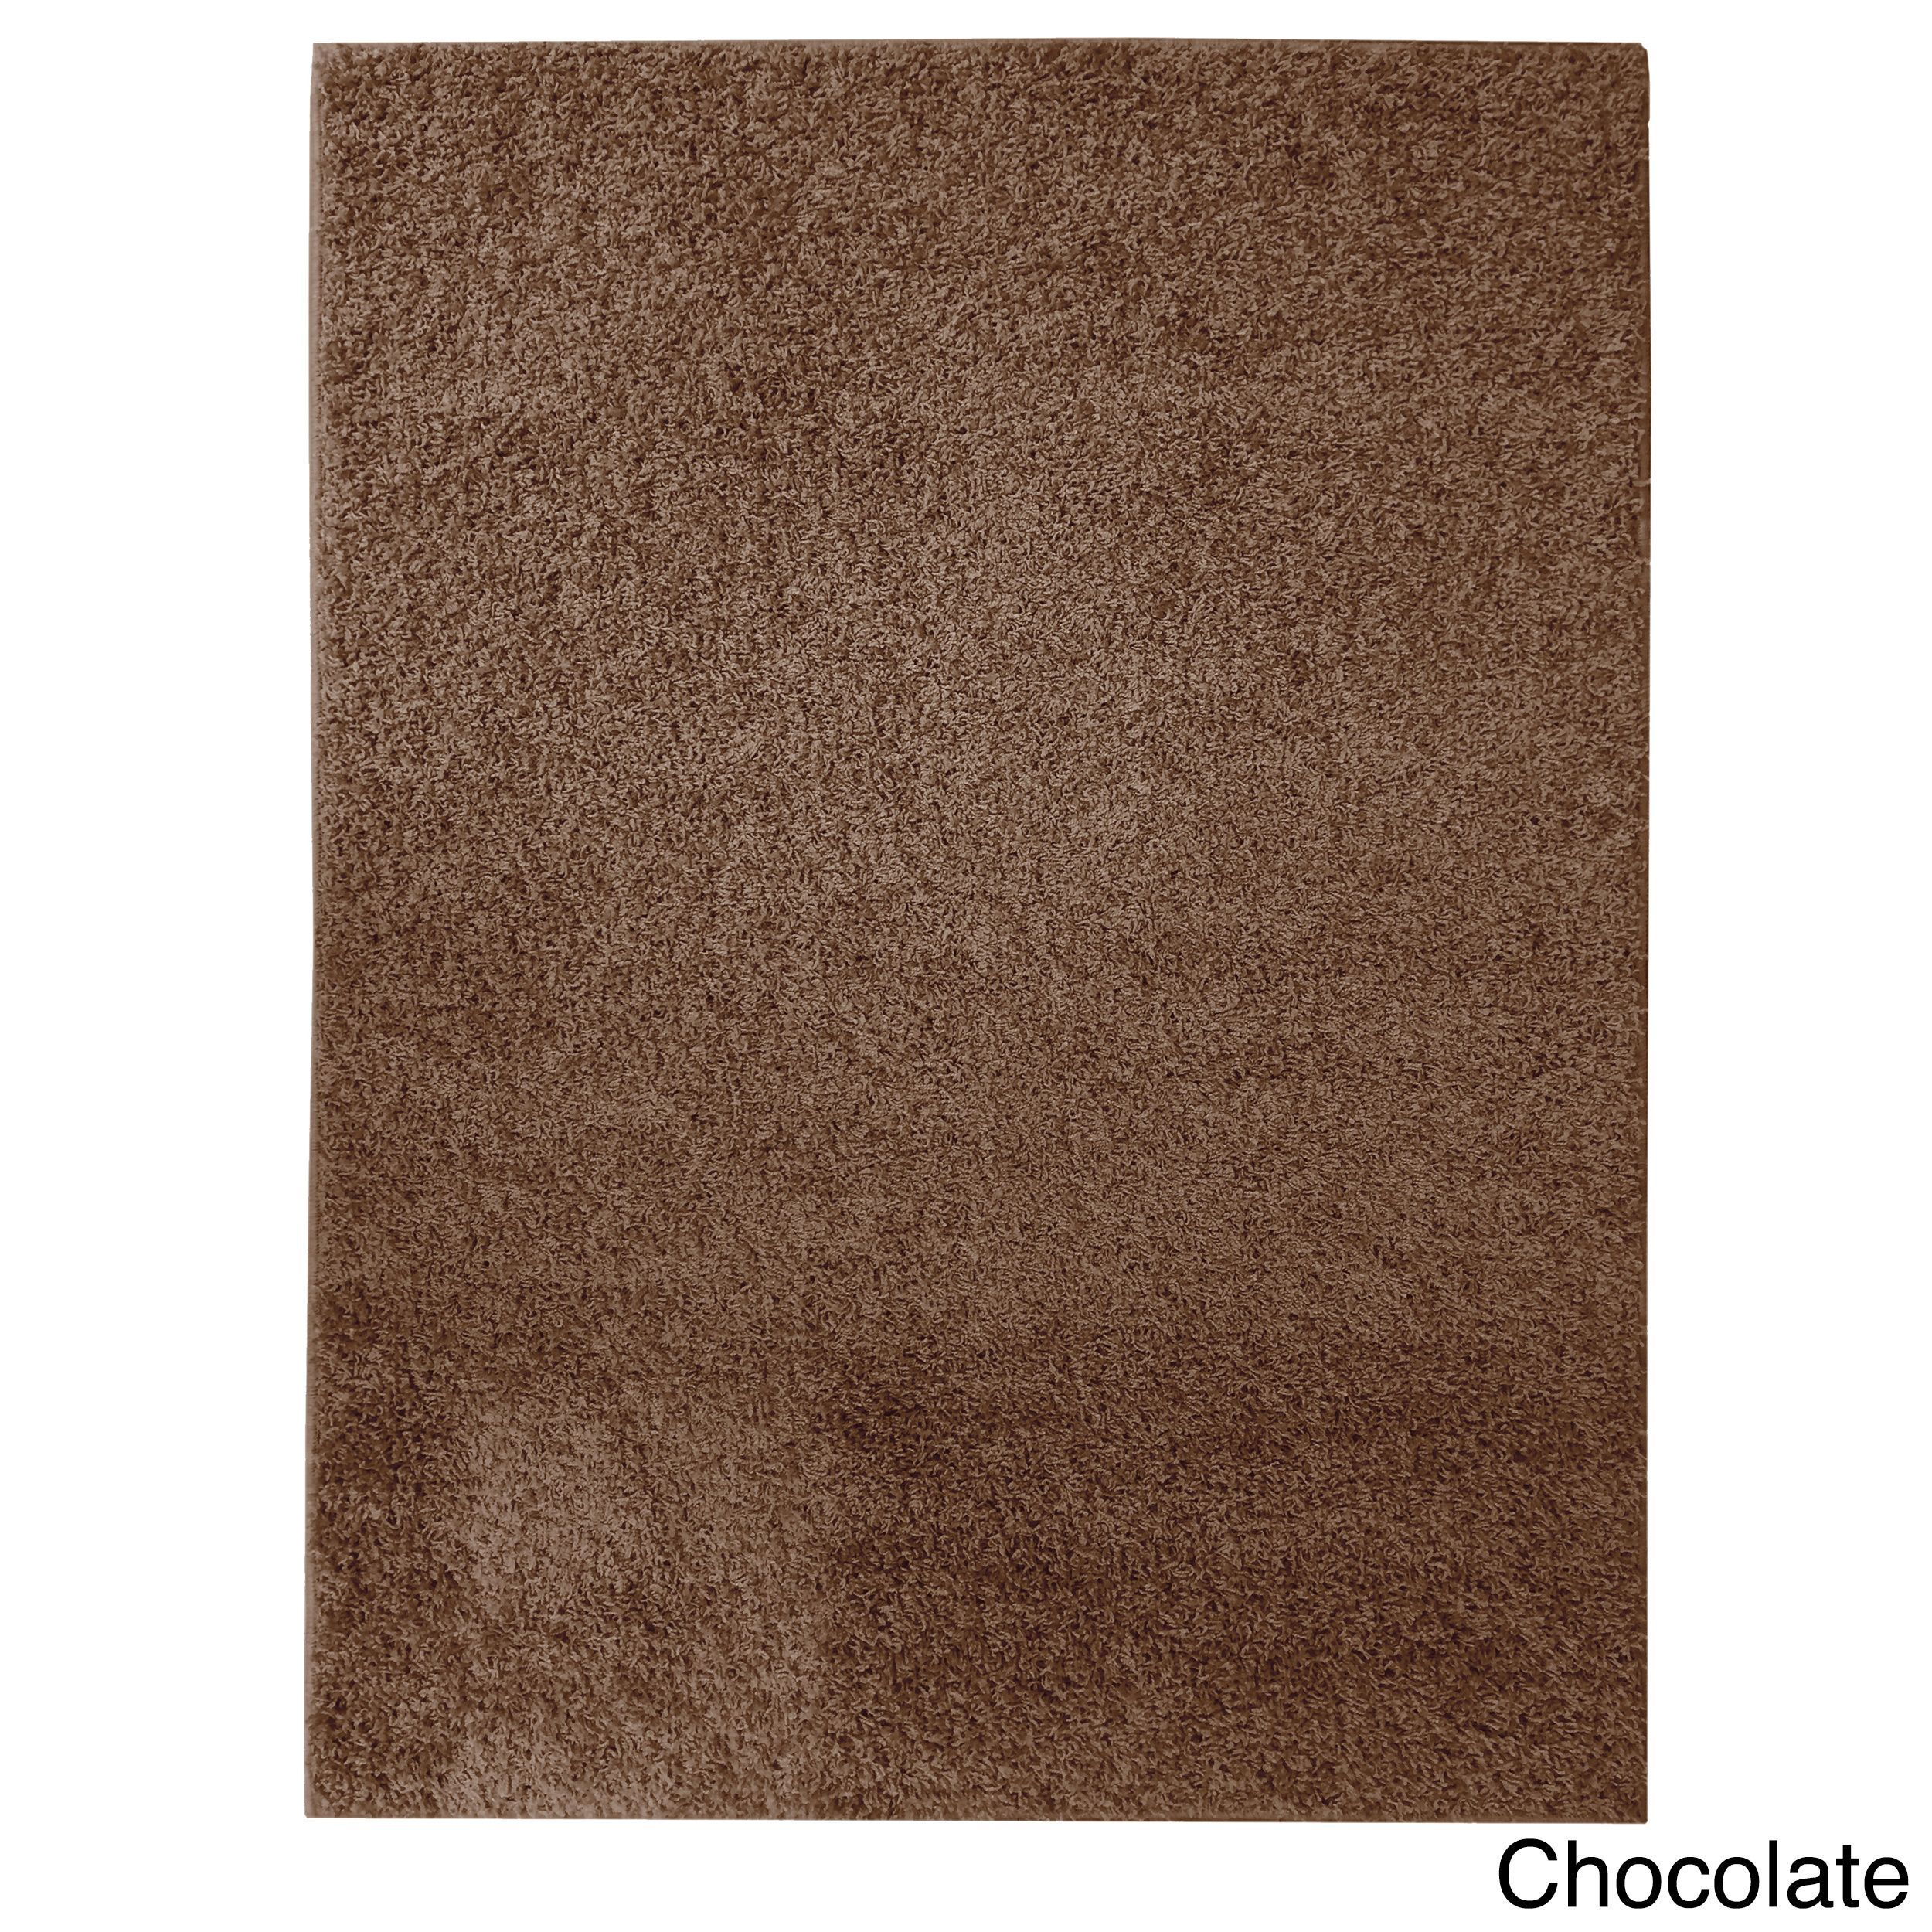 Soft Settings Shag Rug (7' x 10') (Chocolate), Brown, Size 7' x 10' (Polyester, Solid)